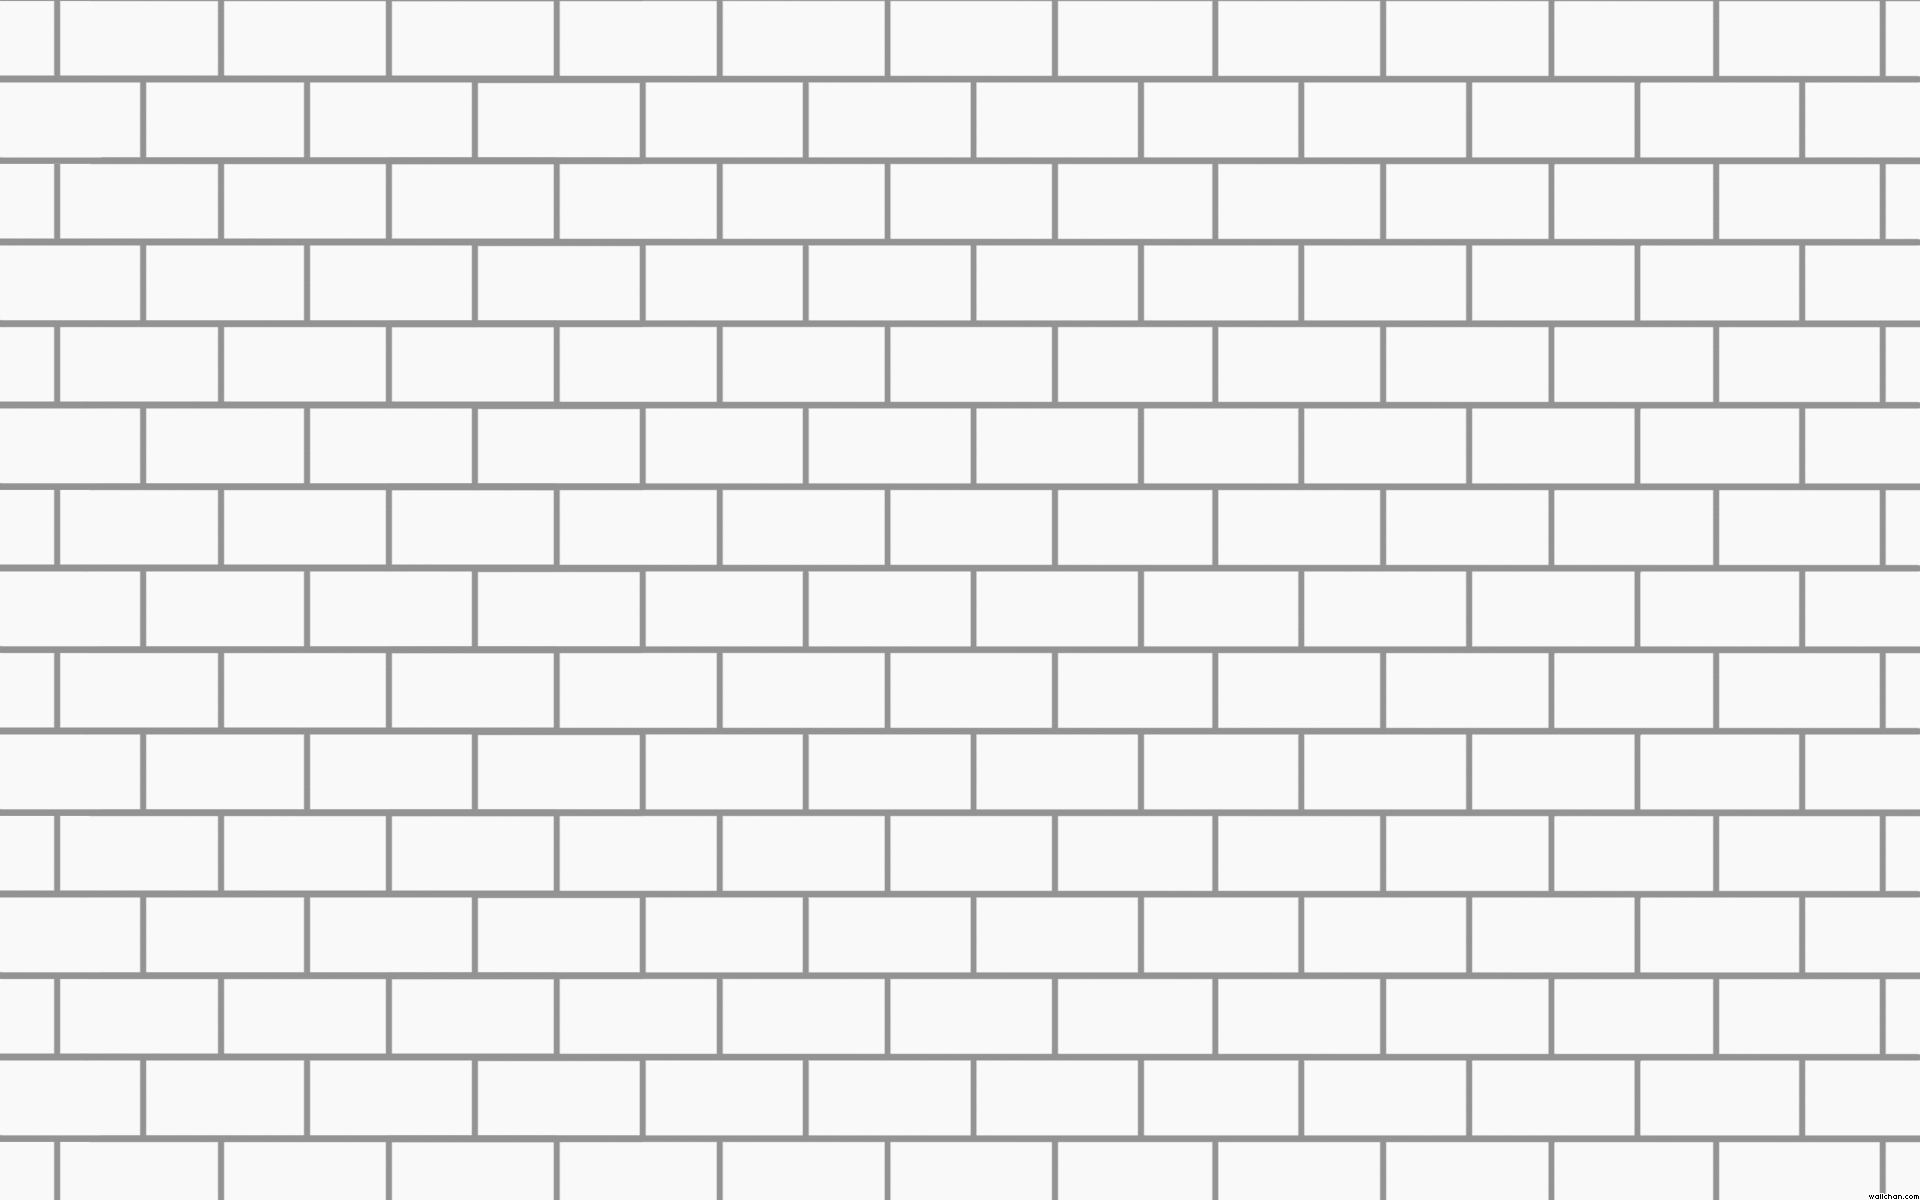 Go Back Gallery For Pink Floyd The Wall Wallpaper Hd 1920x1200